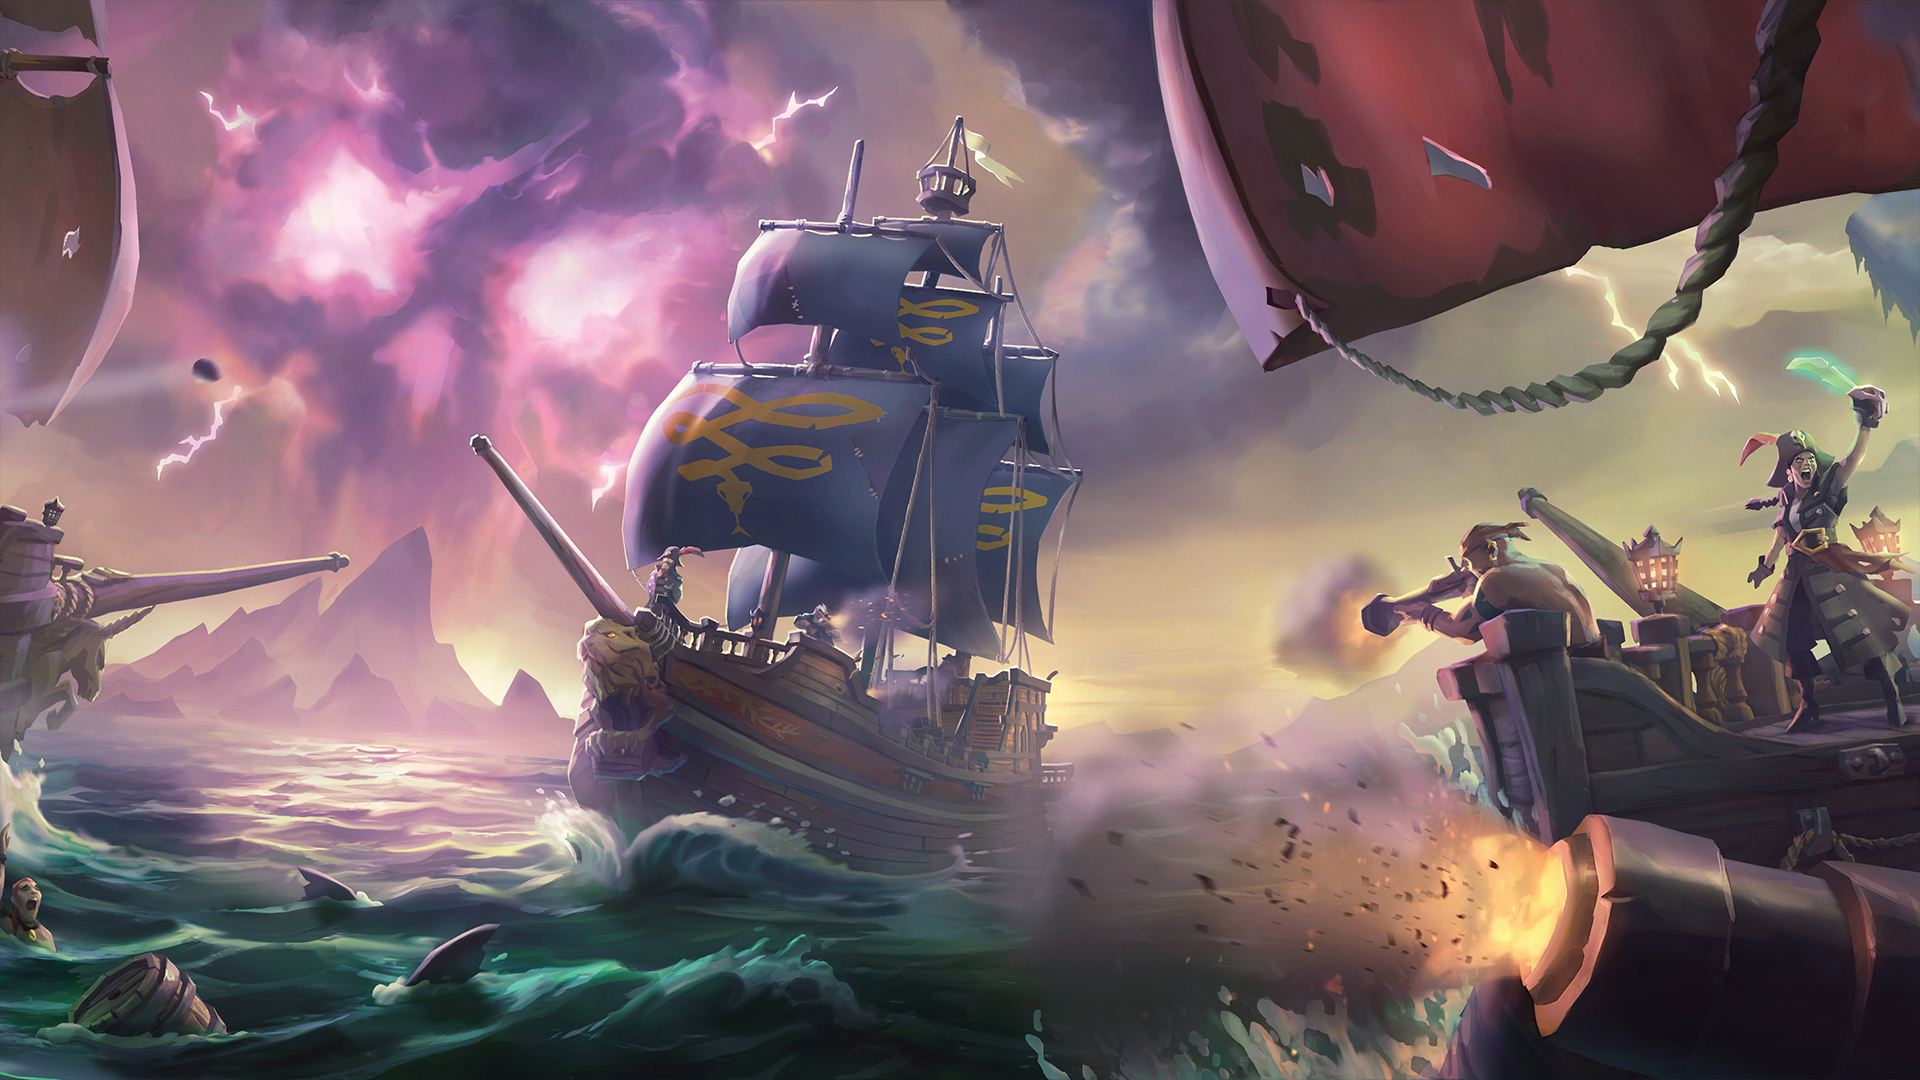 Sea Of Thieves / Sea of Thieves comment attraper les poulets